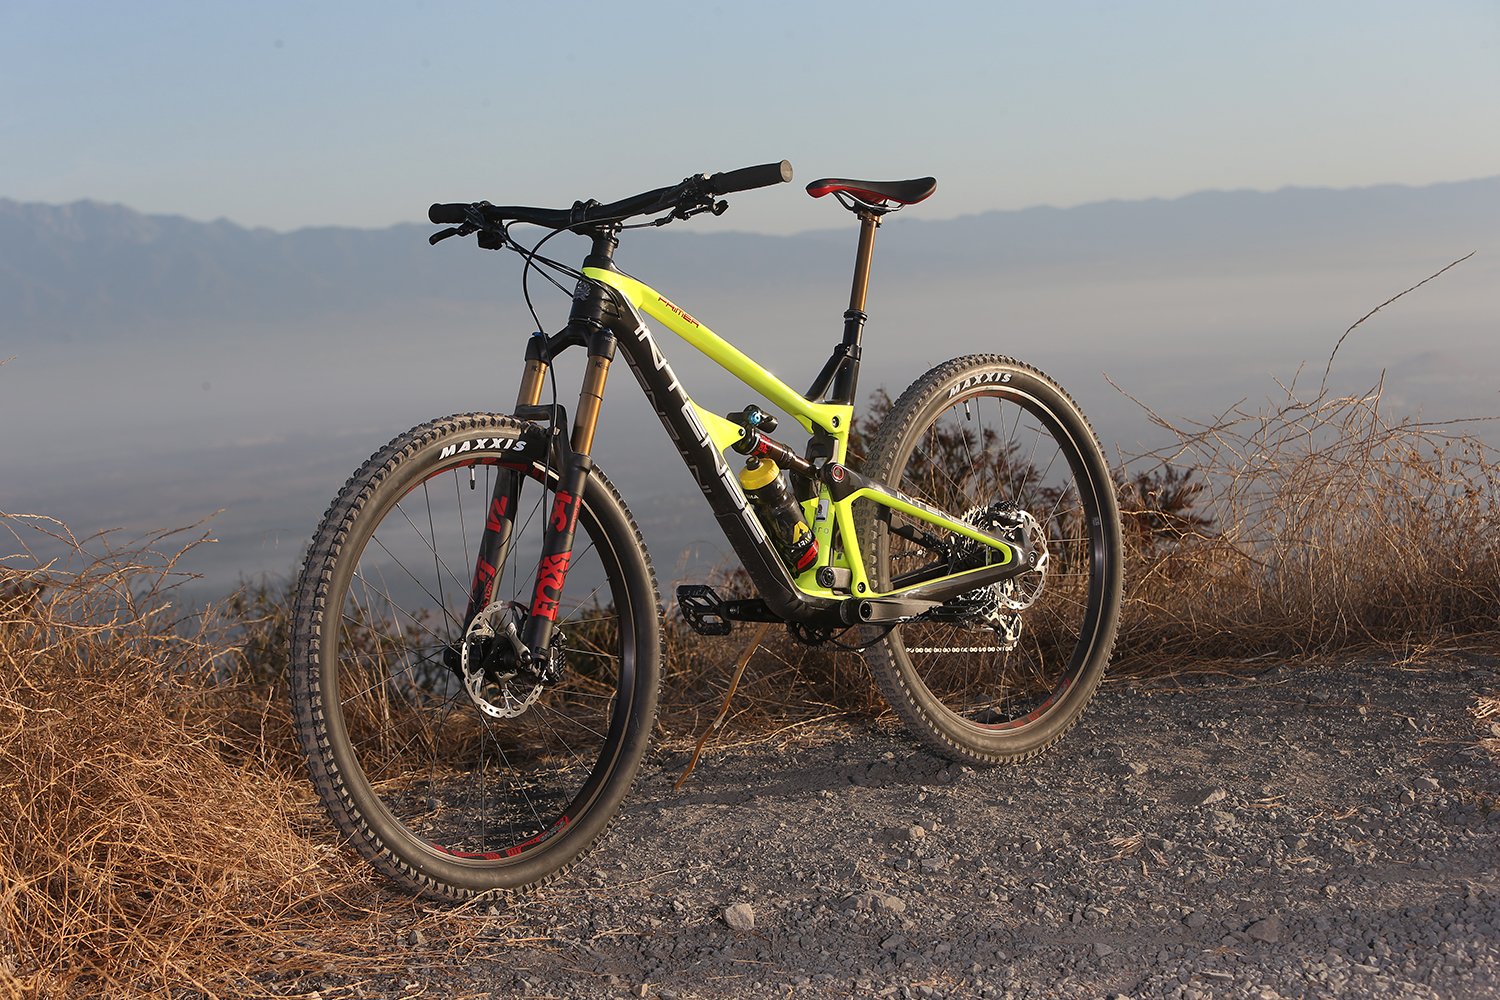 Trail Tested Intense Primer 29 Elite Build Swapmoto Live High to low nearest first. trail tested intense primer 29 elite